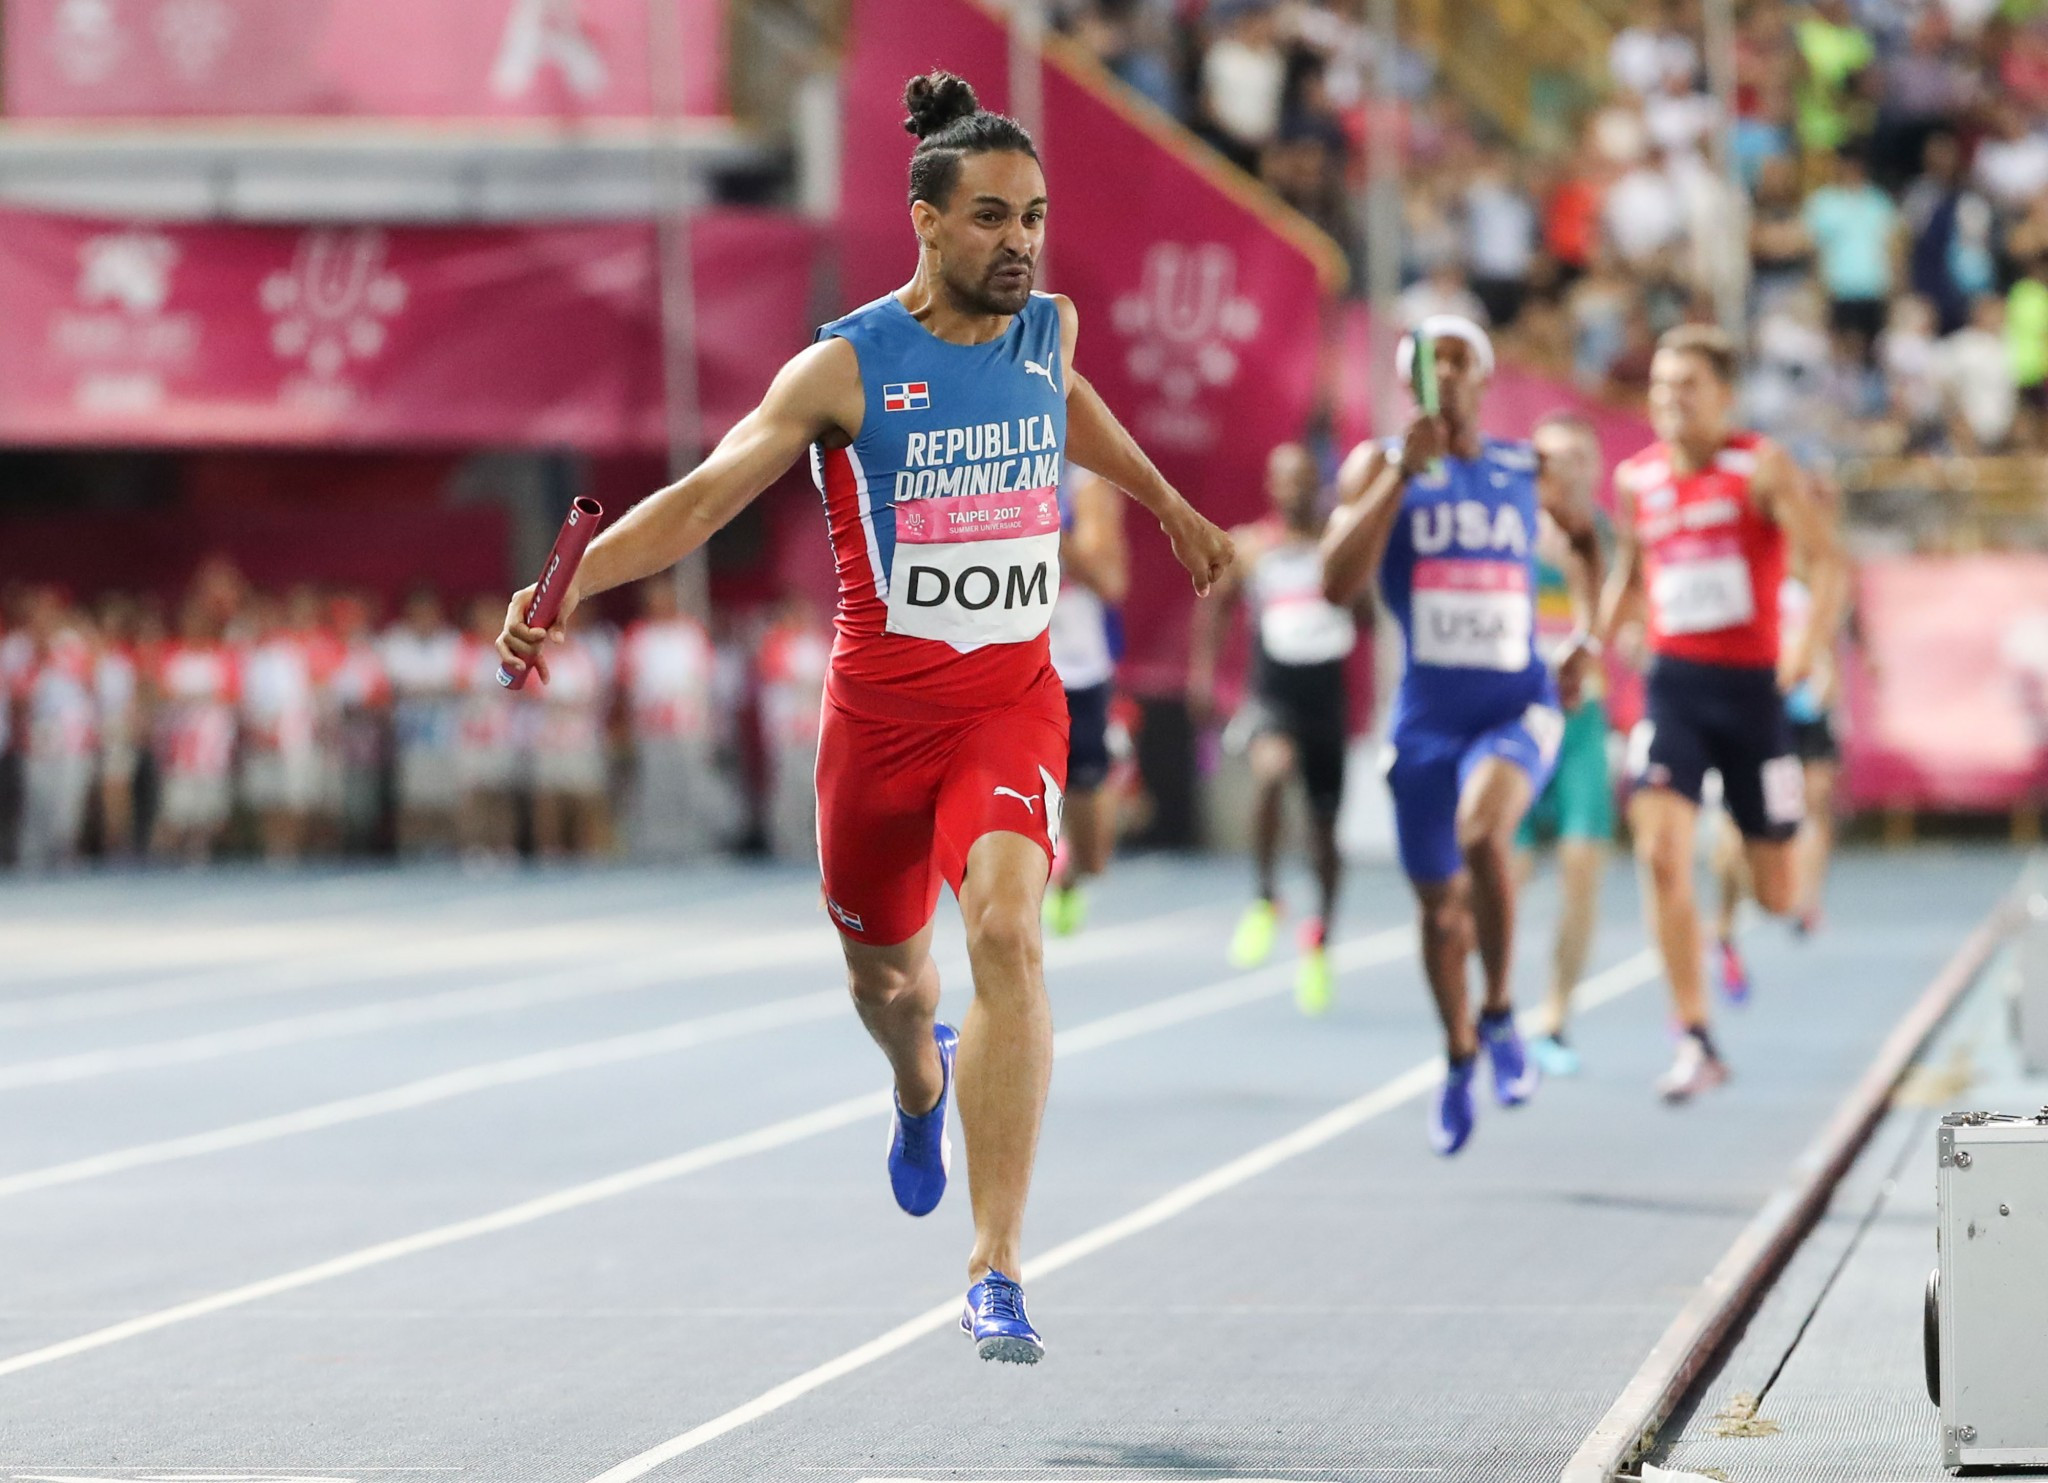 Dominican Republic triumph in men's 4x400m to bring Taipei 2017 athletics action to a close